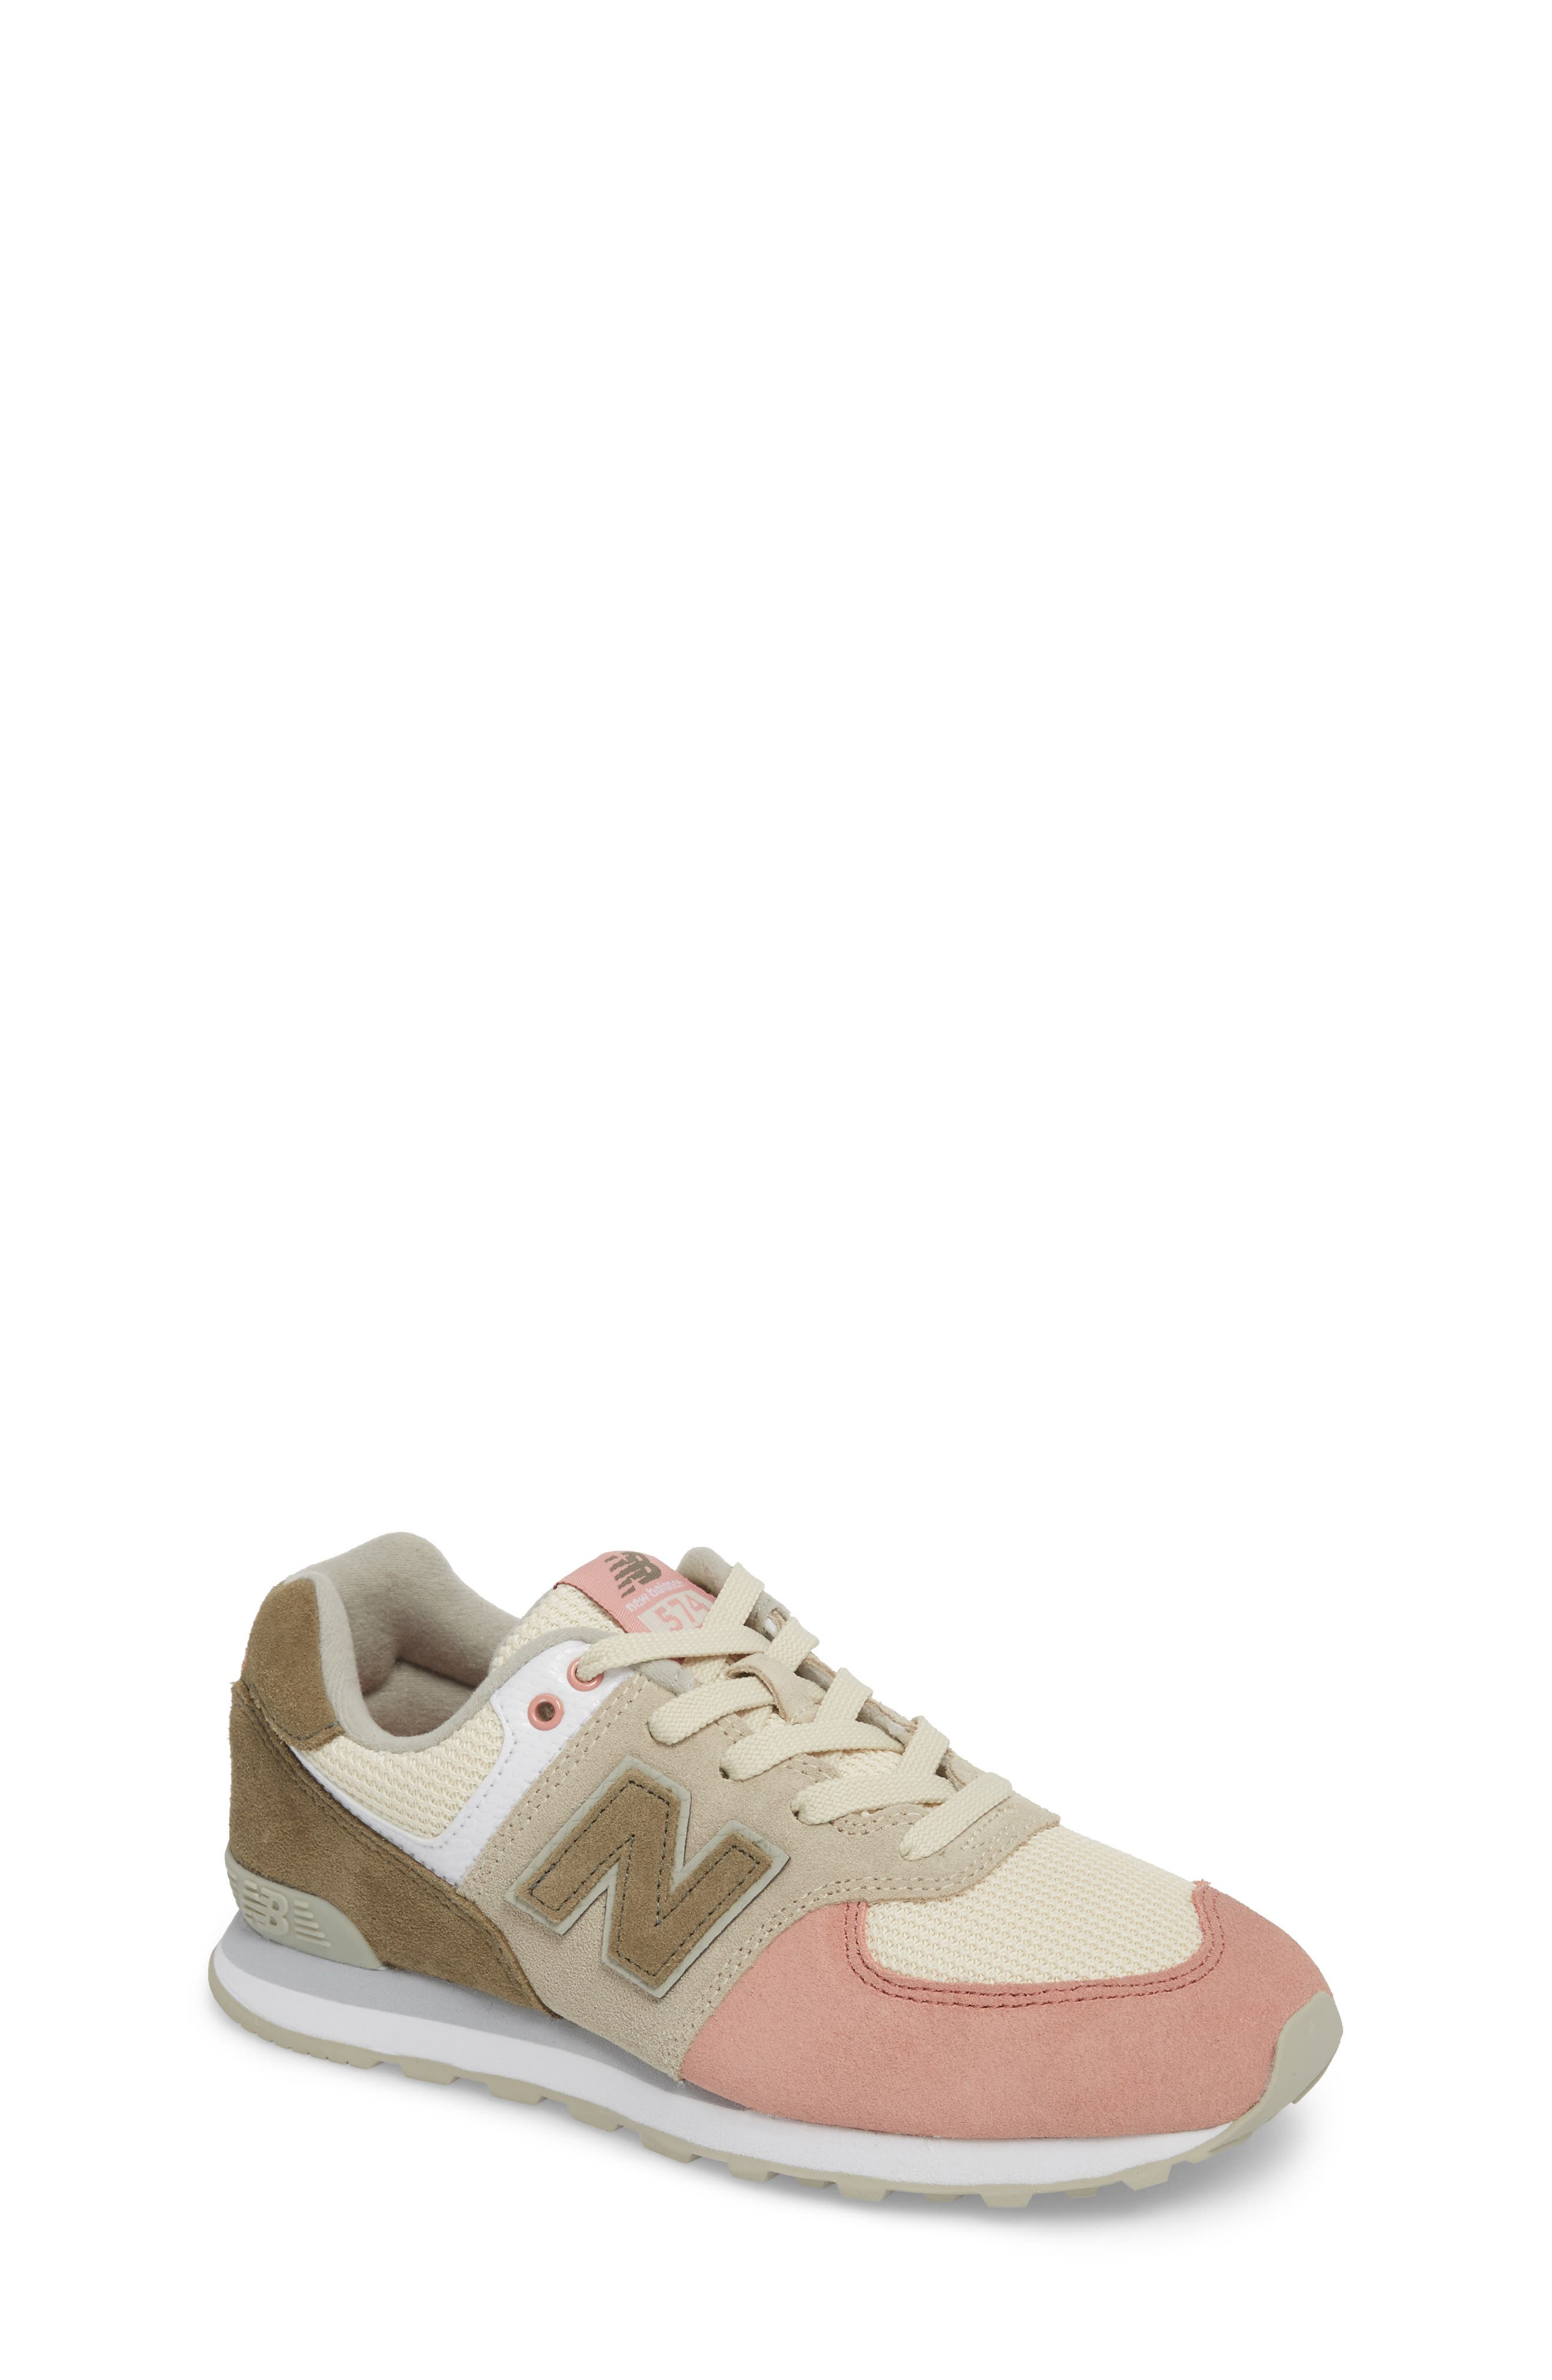 574 Serpent Luxe Sneaker,                             Main thumbnail 2, color,